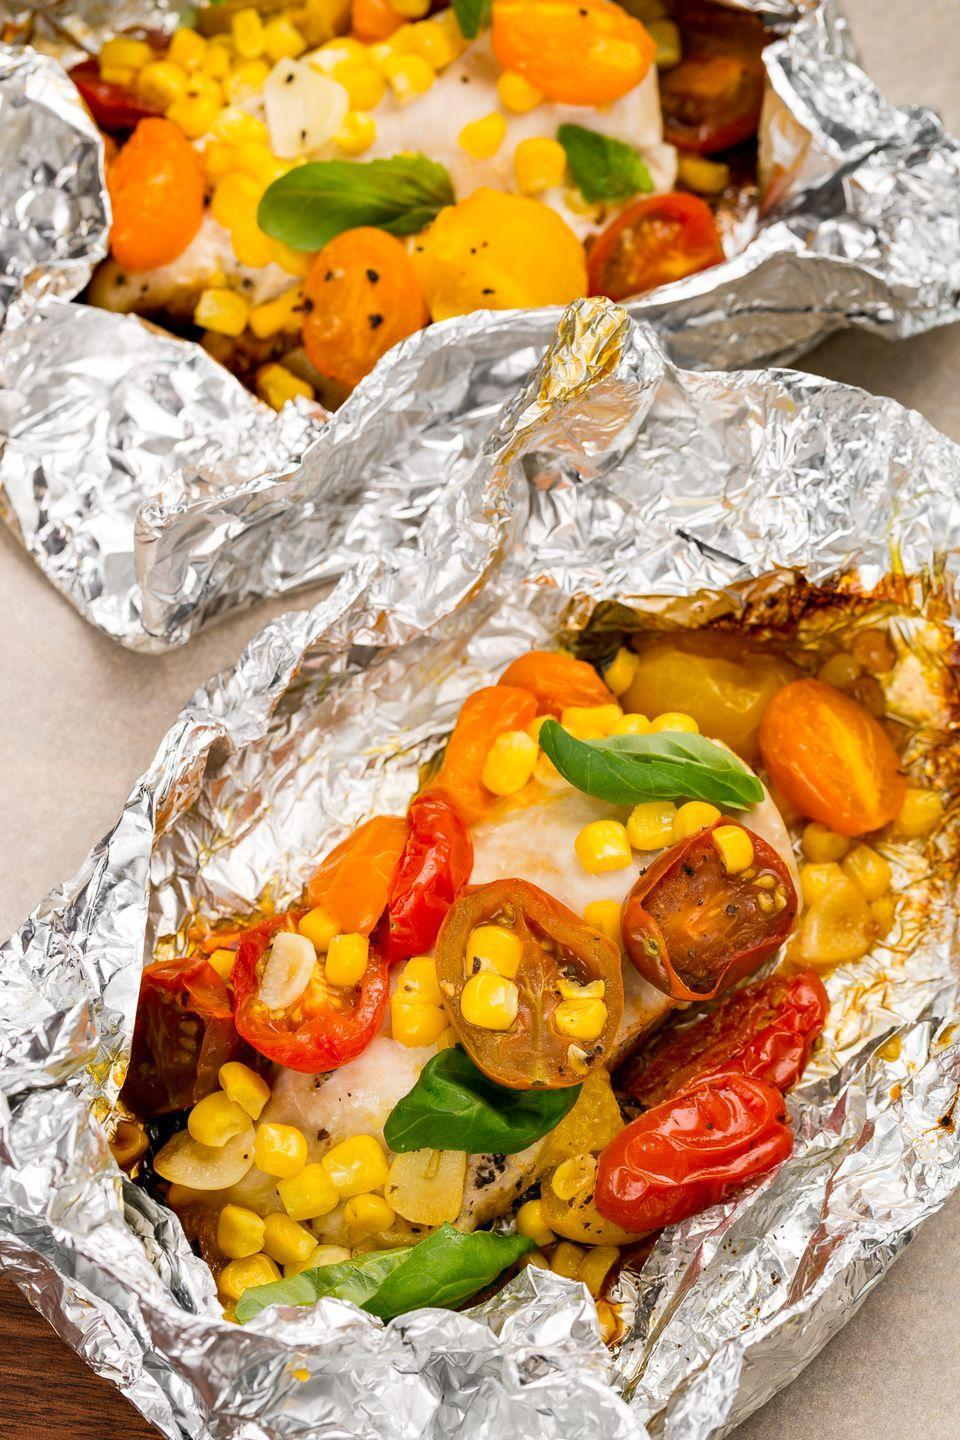 "<p>Wrap up chicken and summer veggies for a fast and super-fresh meal.</p><p>Get the recipe from <a href=""https://www.delish.com/cooking/recipe-ideas/recipes/a47496/chicken-tomatoes-and-corn-foil-pack-recipe/"" rel=""nofollow noopener"" target=""_blank"" data-ylk=""slk:Delish"" class=""link rapid-noclick-resp"">Delish</a>.</p>"